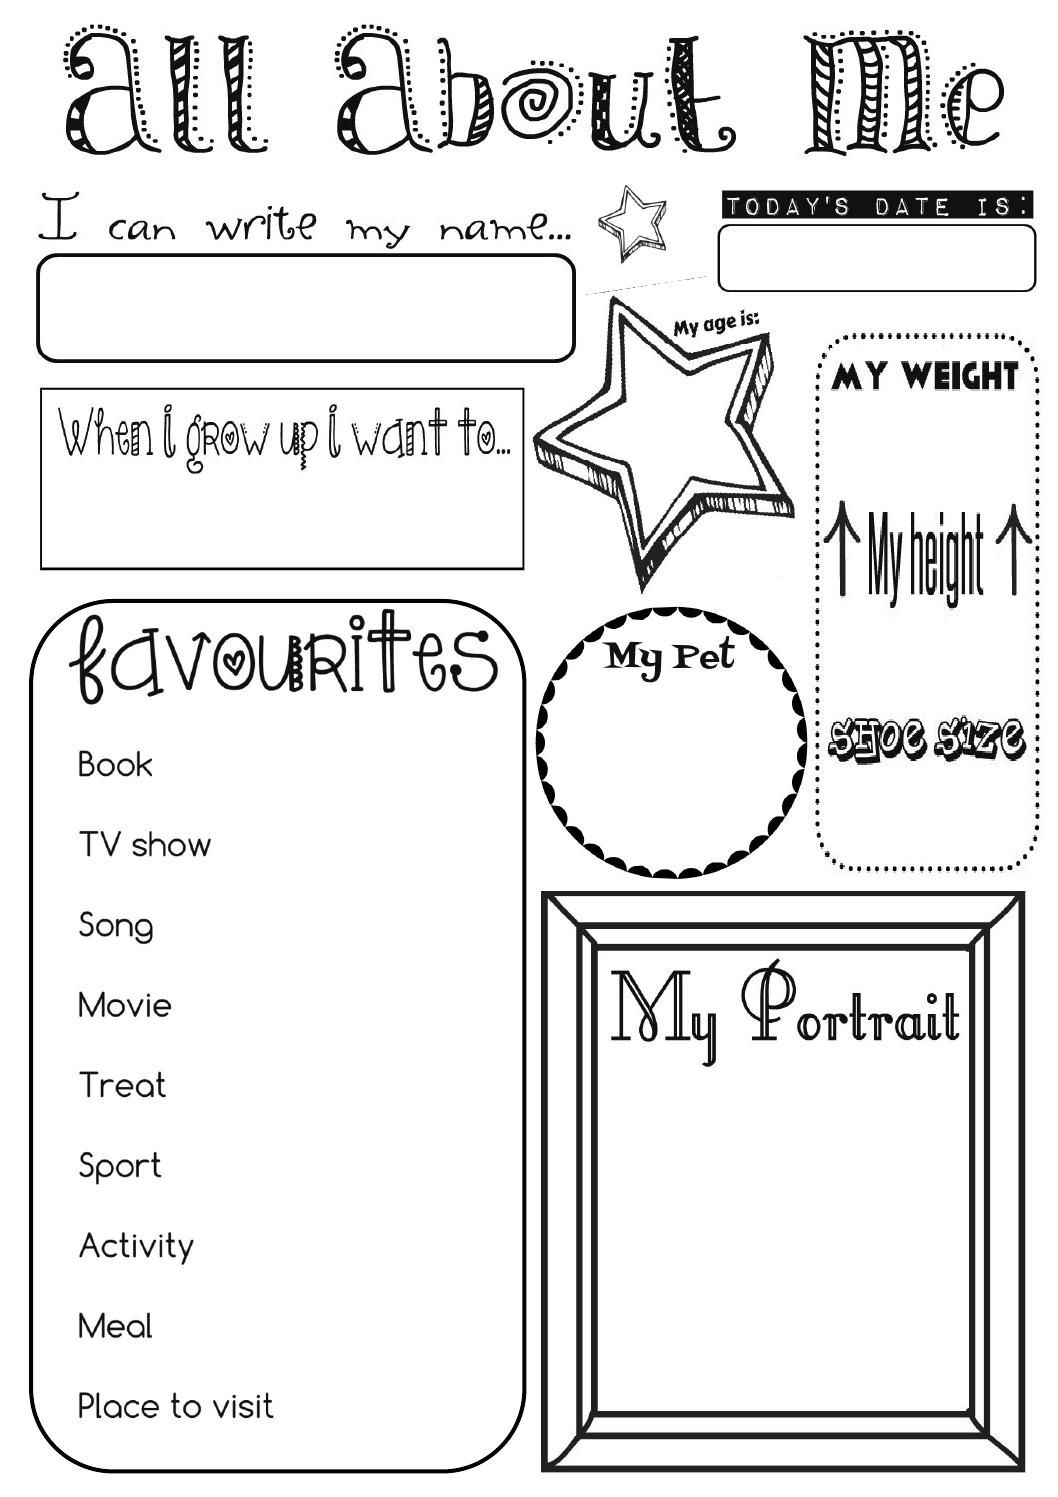 all about me activity sheet by ernie and bird for pre schoolers kindergarten prep kid stuff. Black Bedroom Furniture Sets. Home Design Ideas